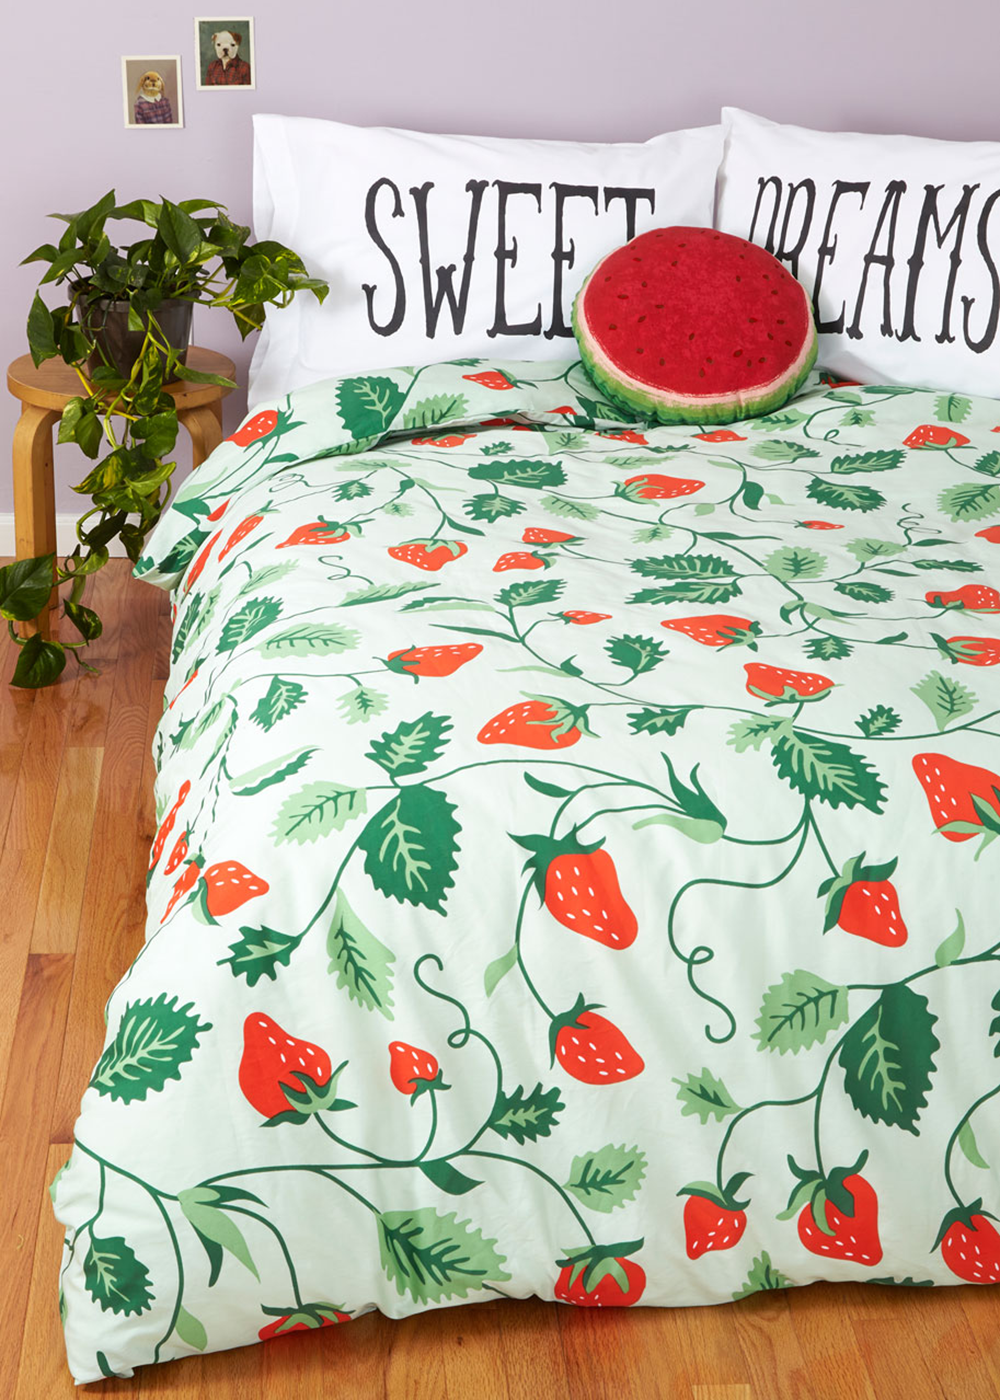 strawberry-fields-bedding/stawberry-fields-bedding.png